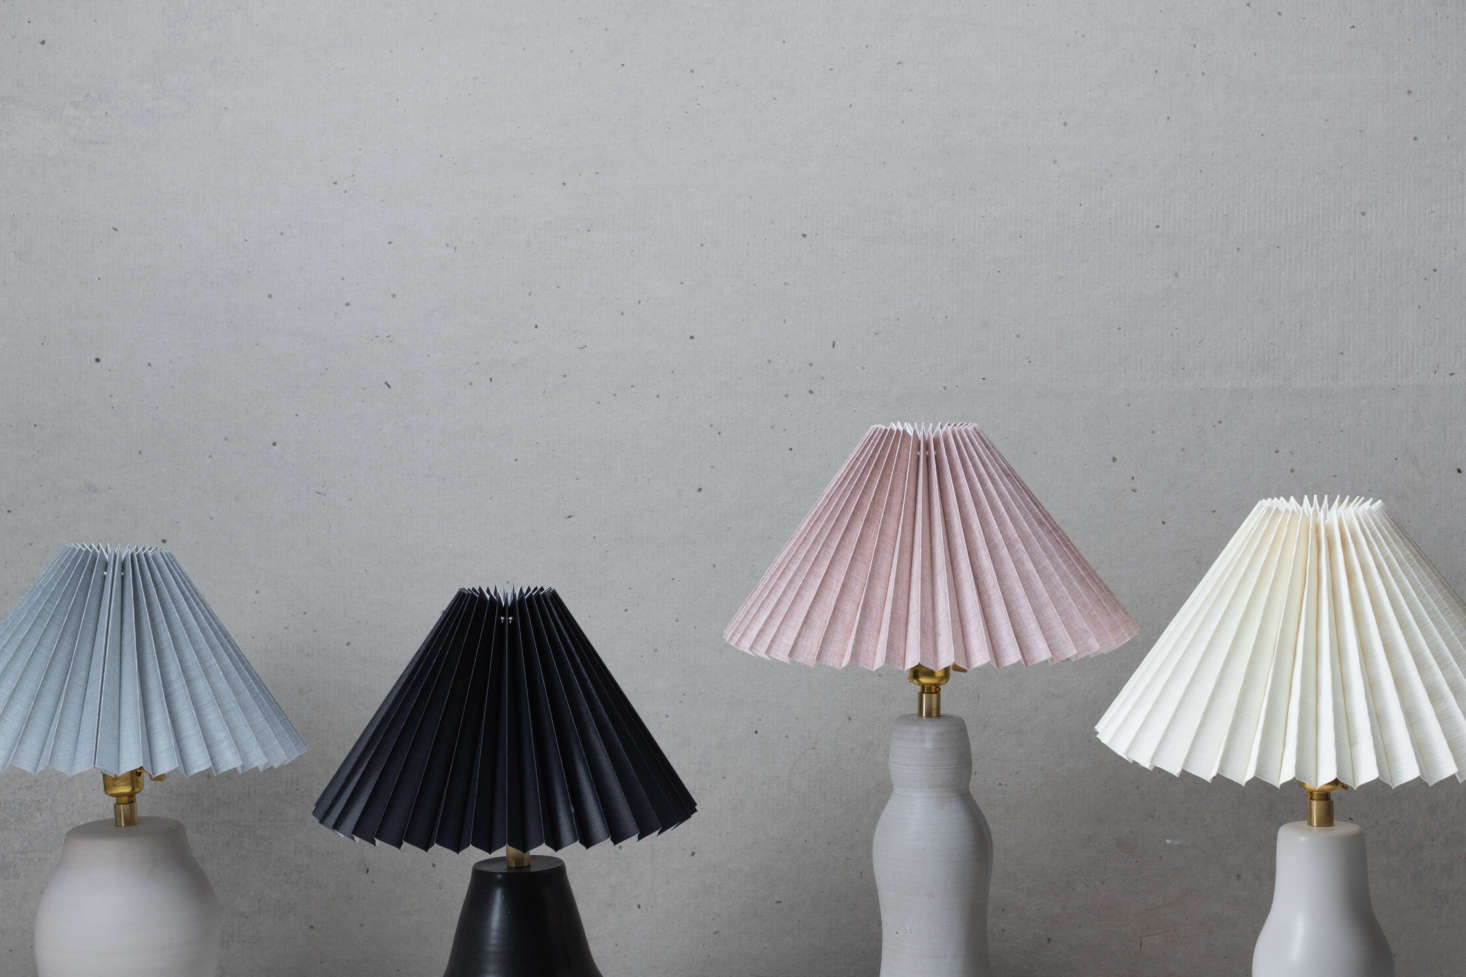 The line ranges in price from $550 to $700, and is available with a choice of shade colors.